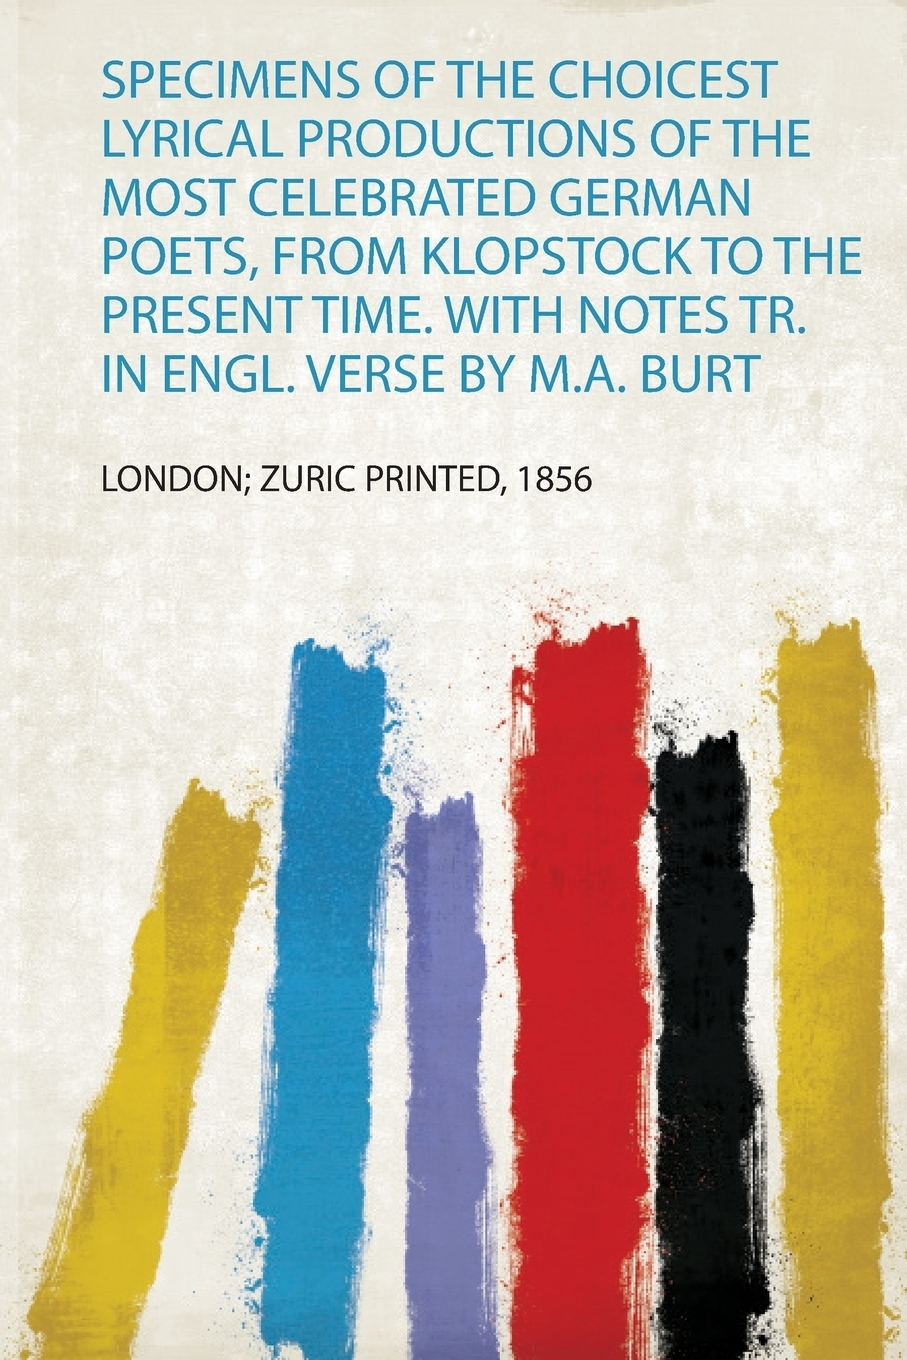 Specimens of the Choicest Lyrical Productions of the Most Celebrated German Poets, from Klopstock to the Present Time. With Notes Tr. in Engl. Verse by M.A. Burt коллектив авторов tales from the german comprising specimens from the most celebrated authors